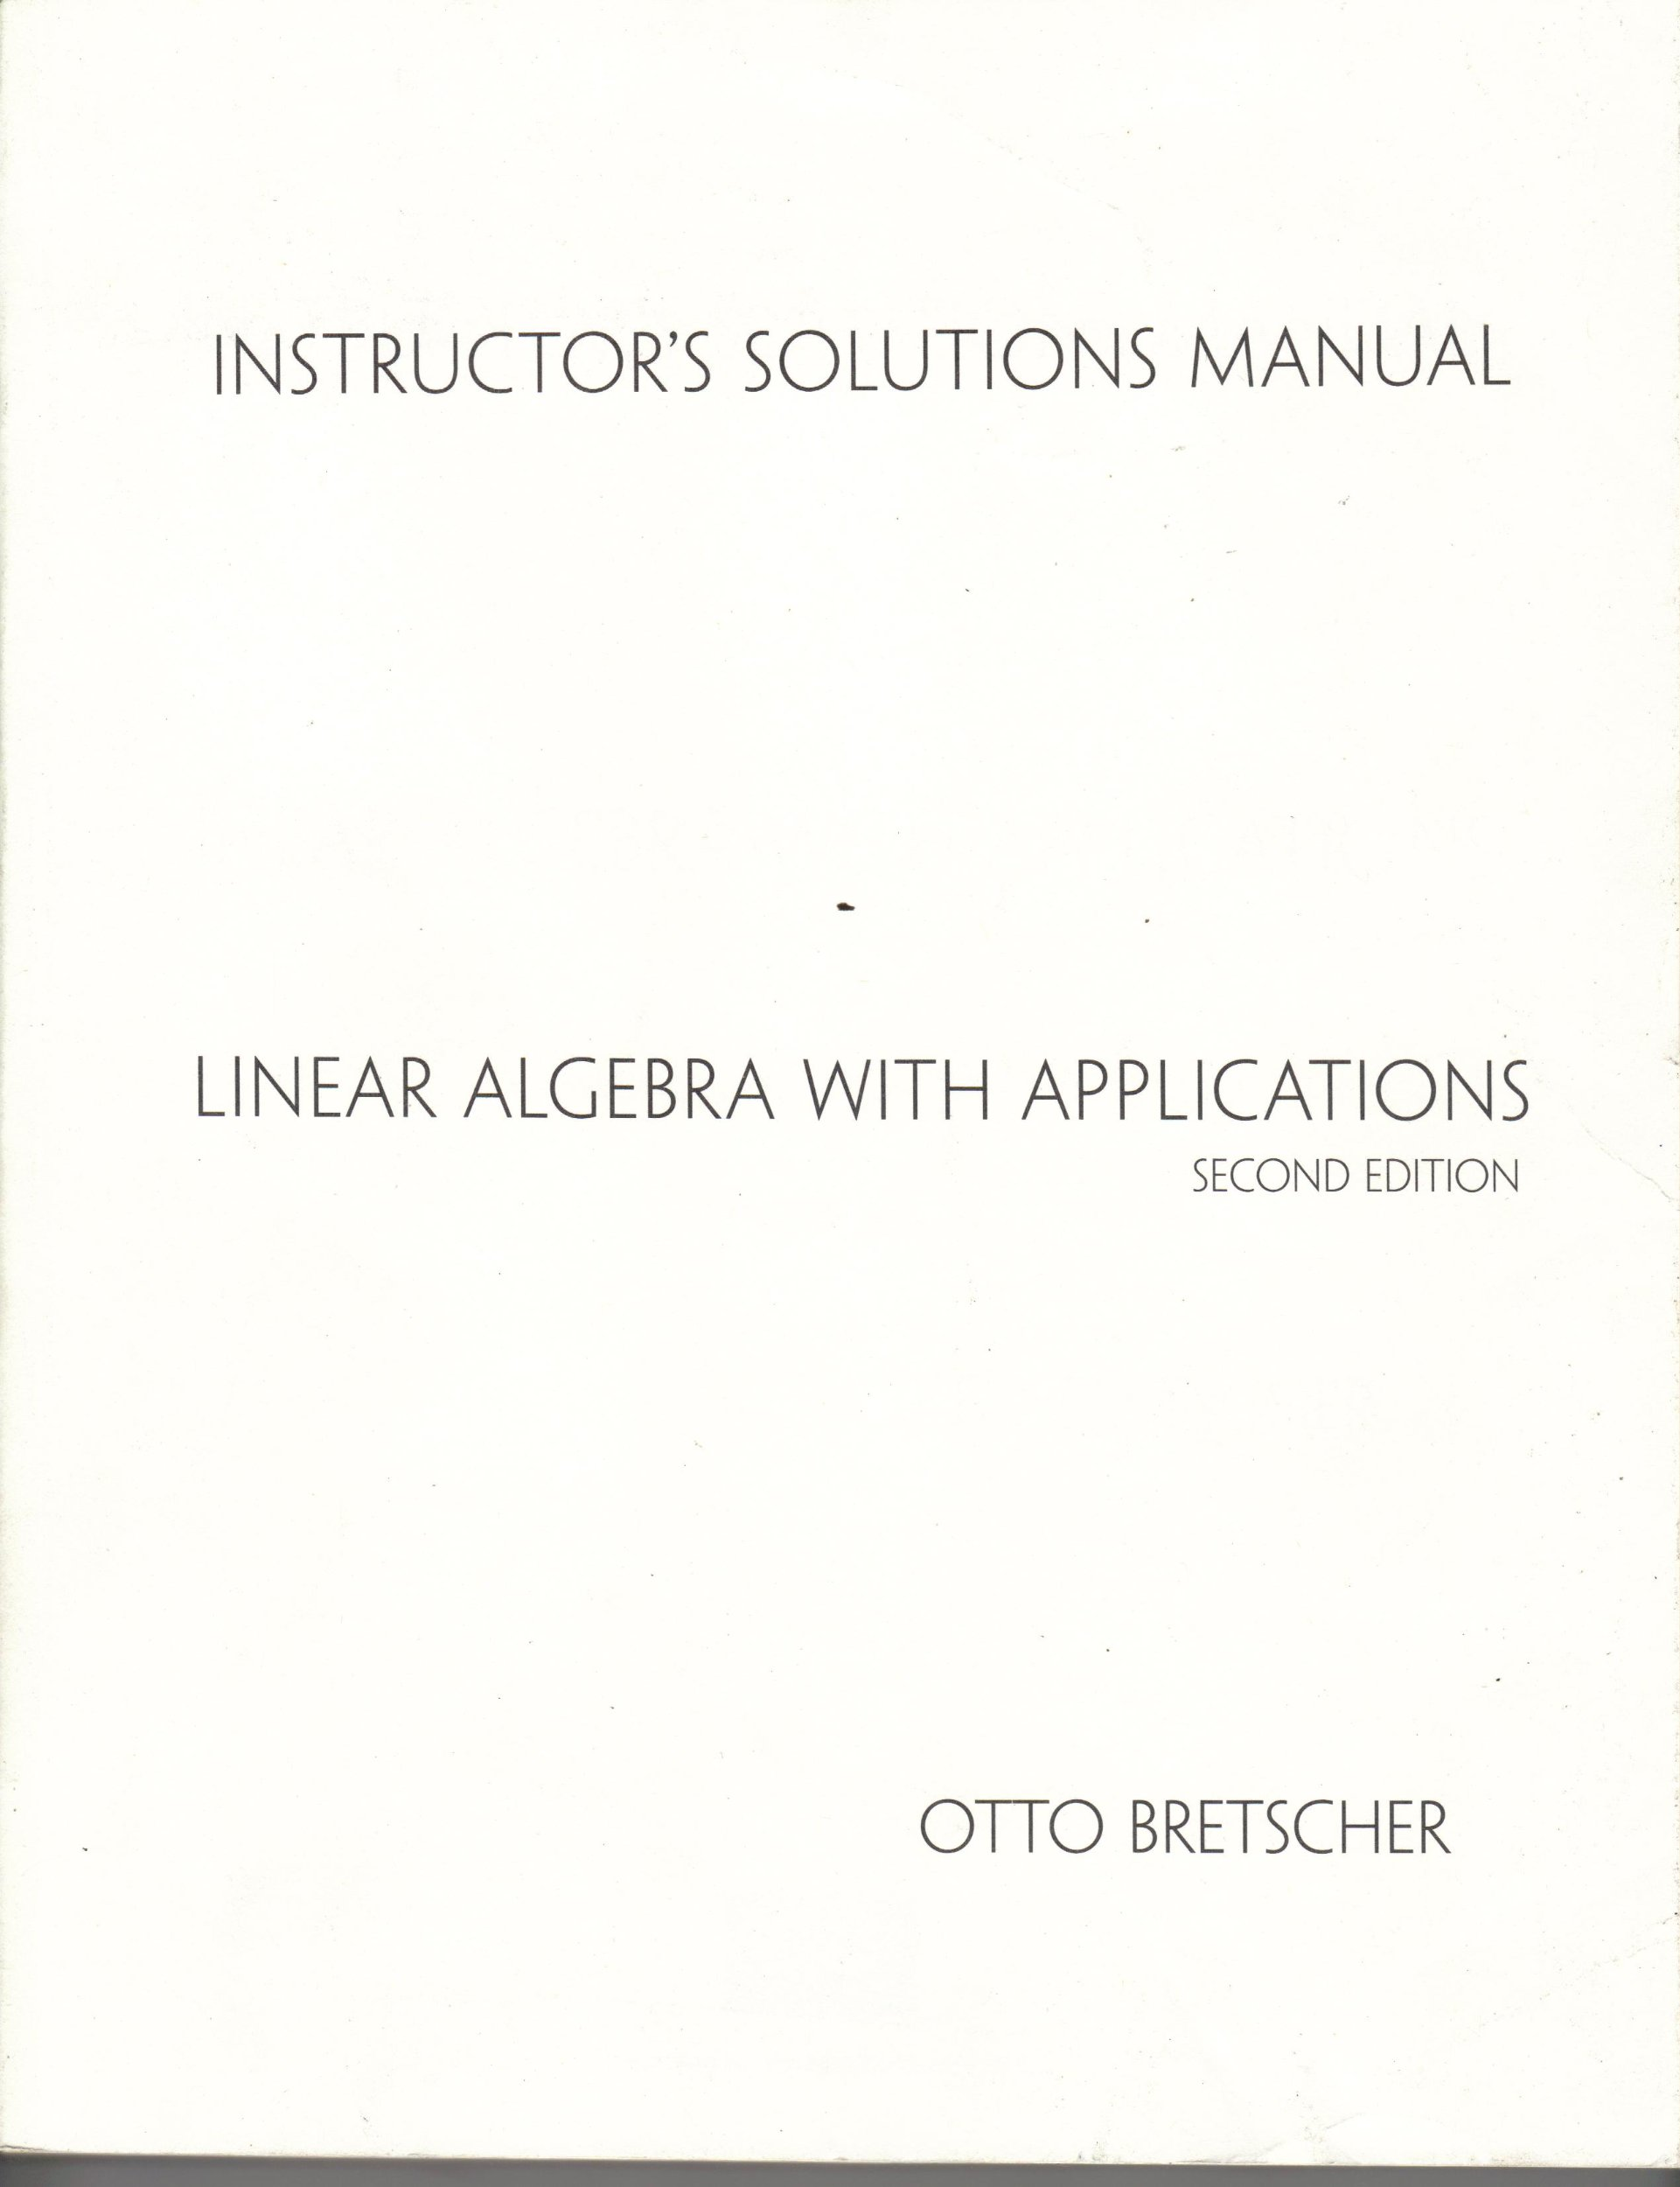 Linear Algebra with Applications, 2nd Edition, INSTRUCTOR'S SOLUTIONS MANUAL:  Otto Bretscher: Amazon.com: Books